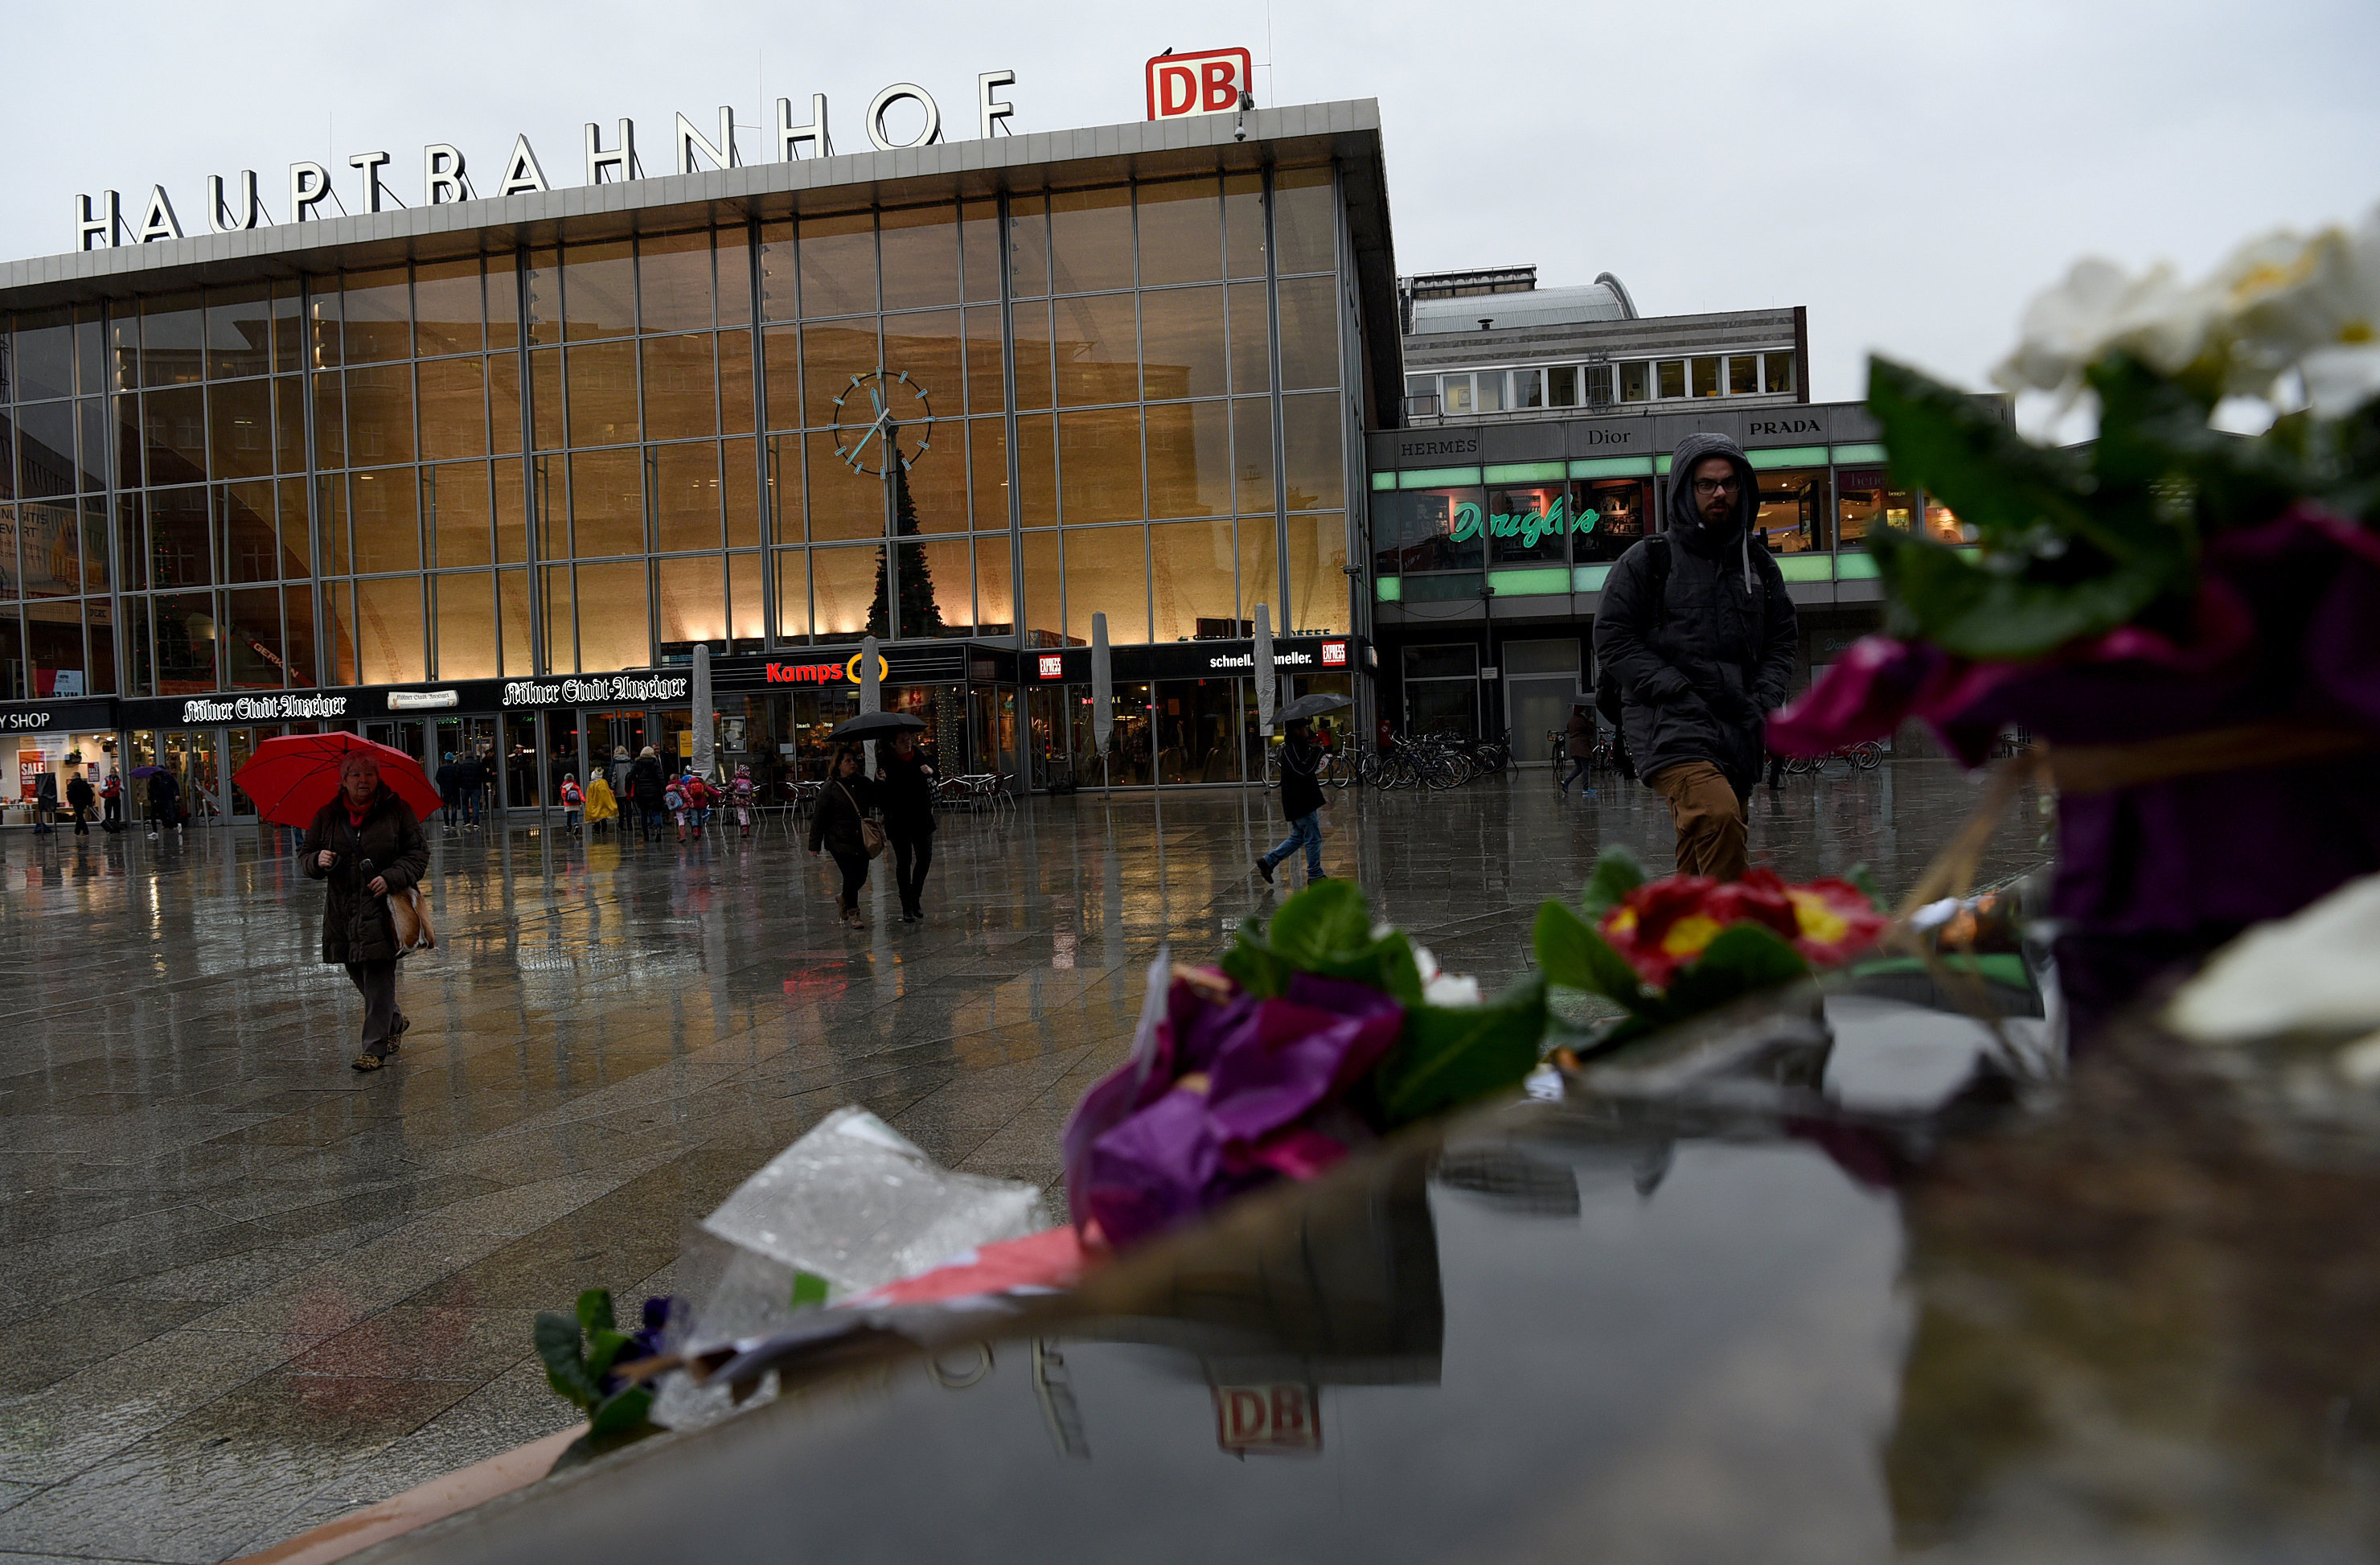 Flowers and letters of protest are laid down on the steps in front of the Cologne main train station in Cologne, western Germany on January 11, 2016